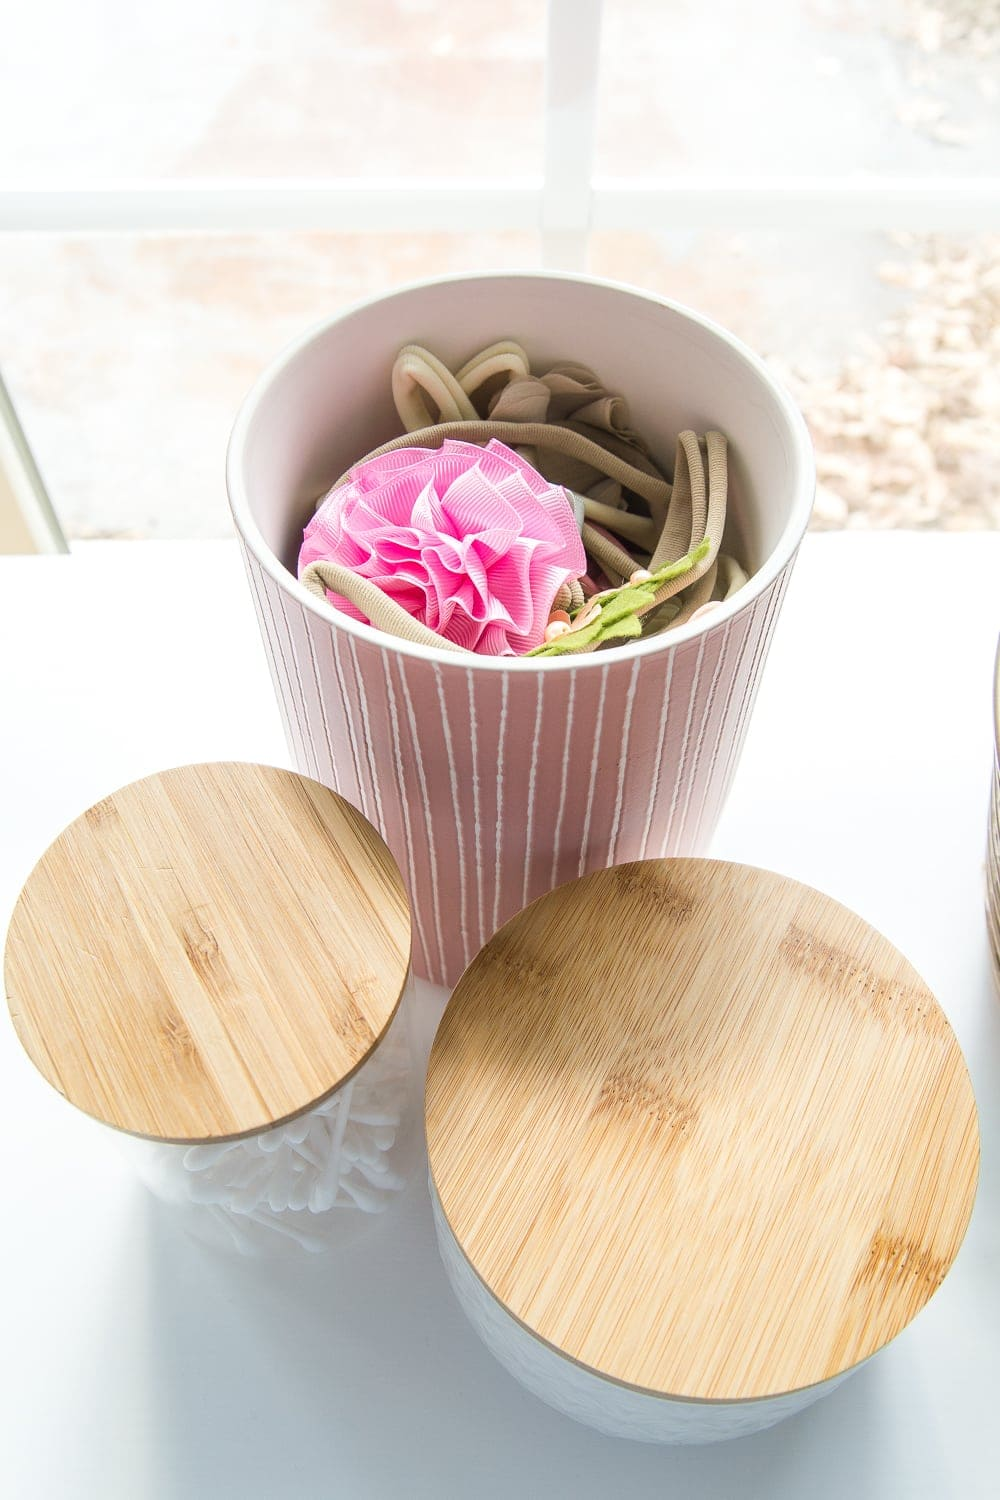 Nursery Organization | Use lidded canisters from the kitchenware aisle to store headbands and bows.